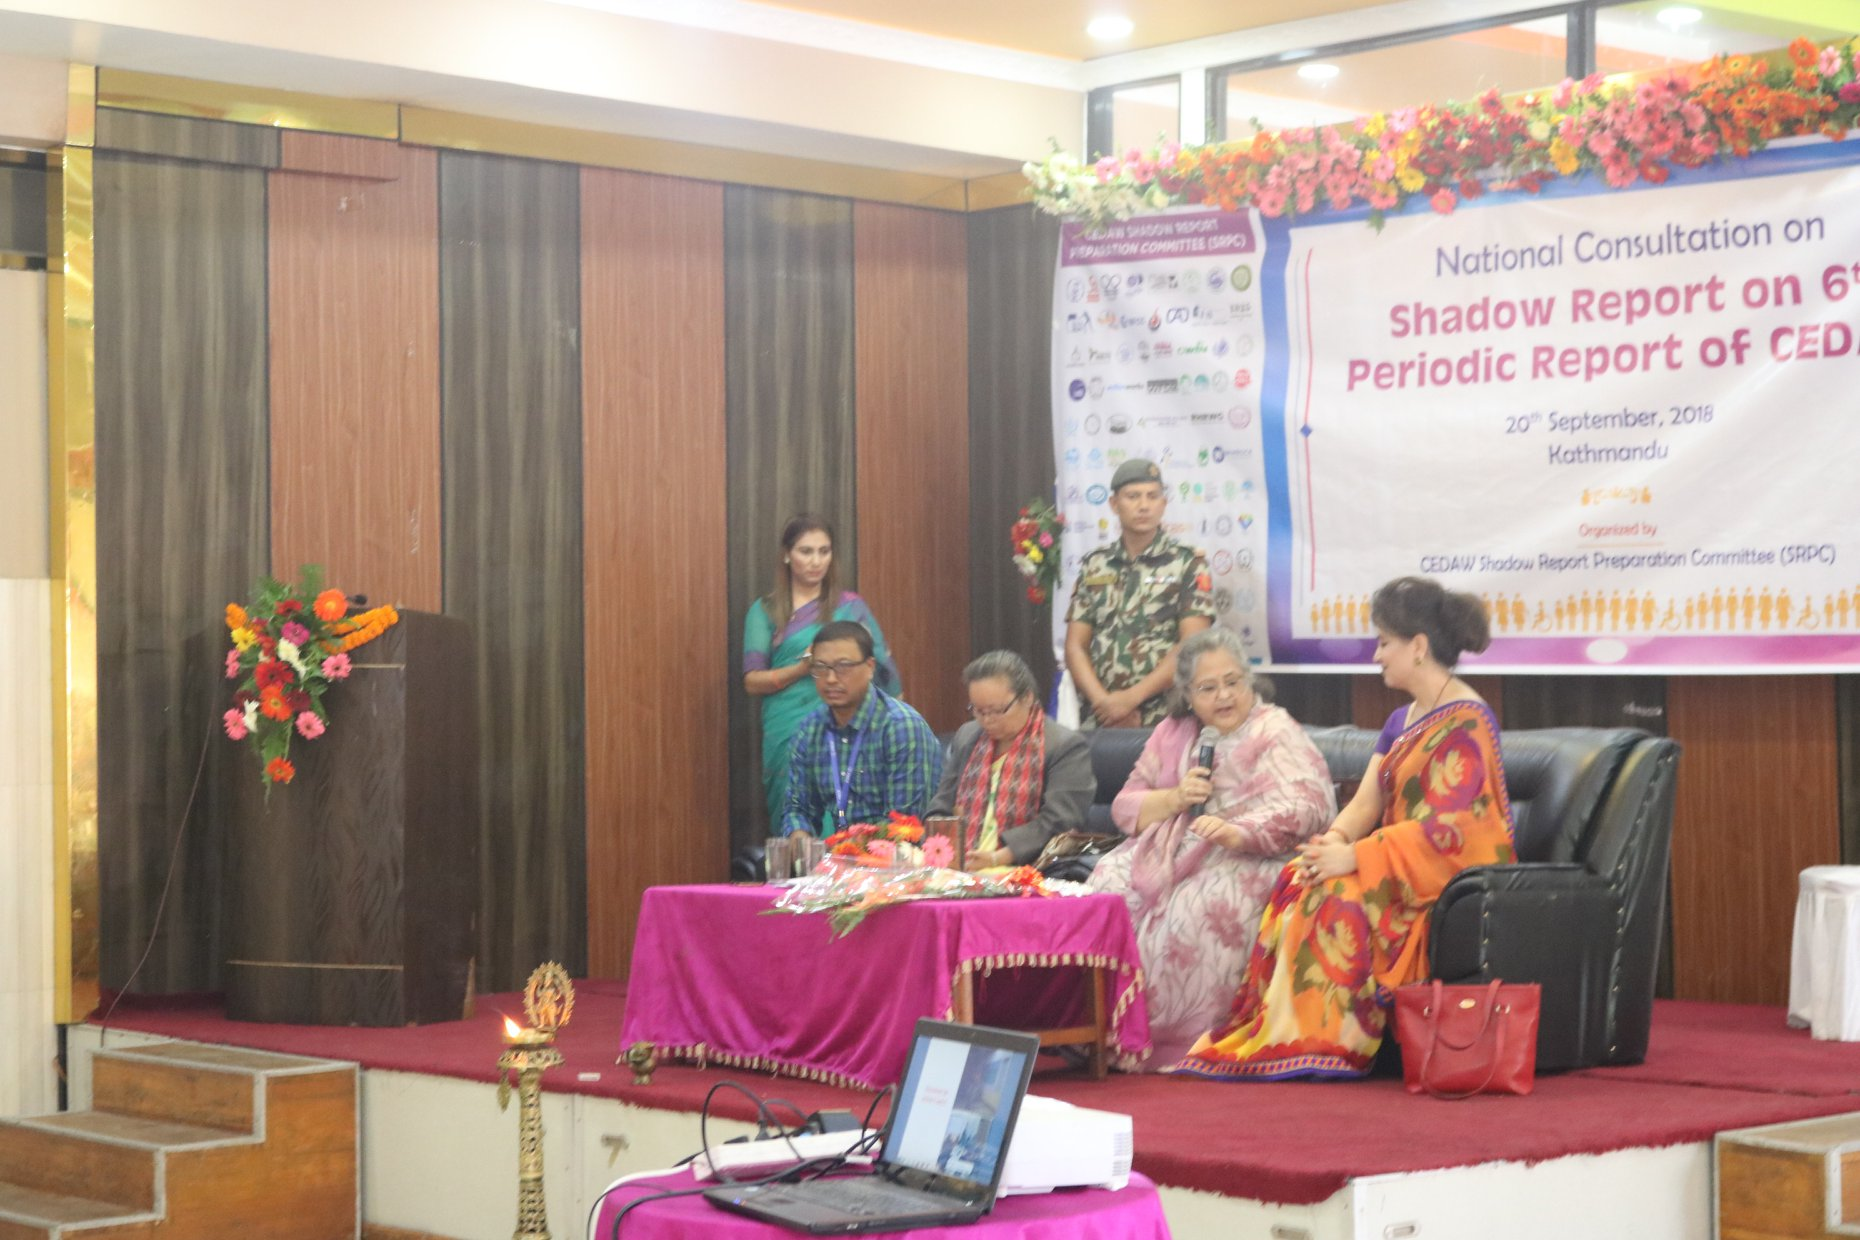 National Consultation on CEDAW Shadow Report - Forum for